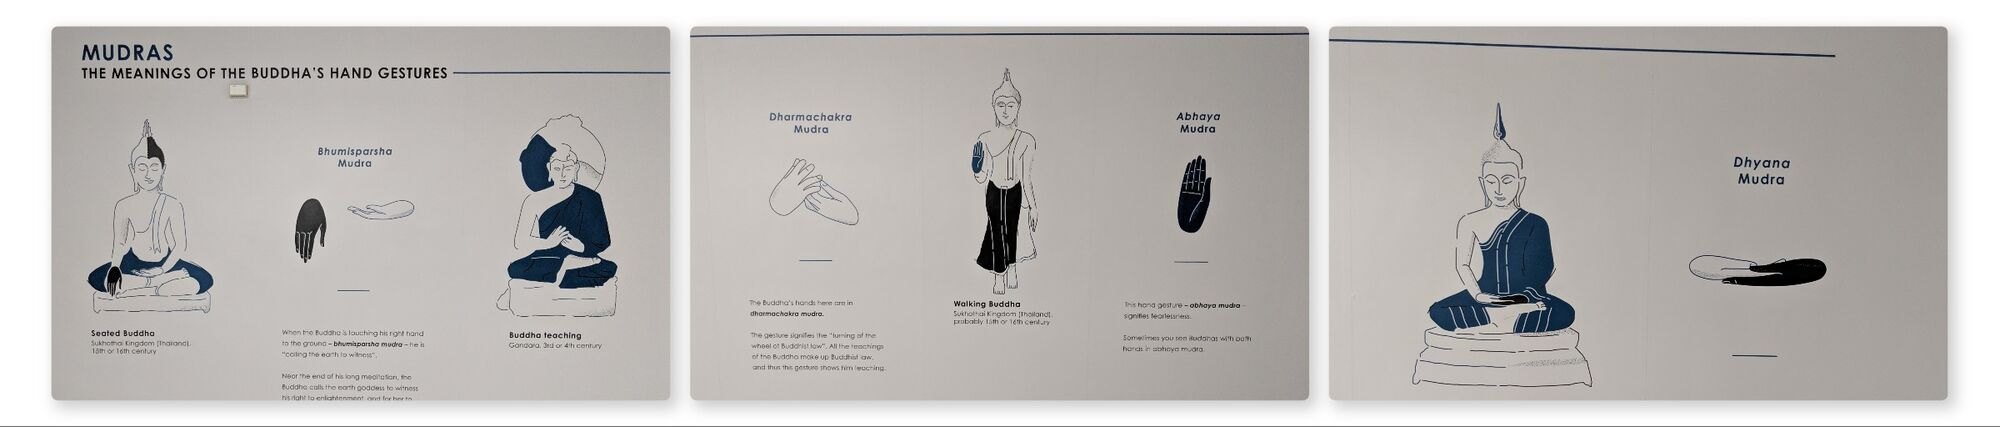 Mudras - The Meanings of the Buddha's hand gestures